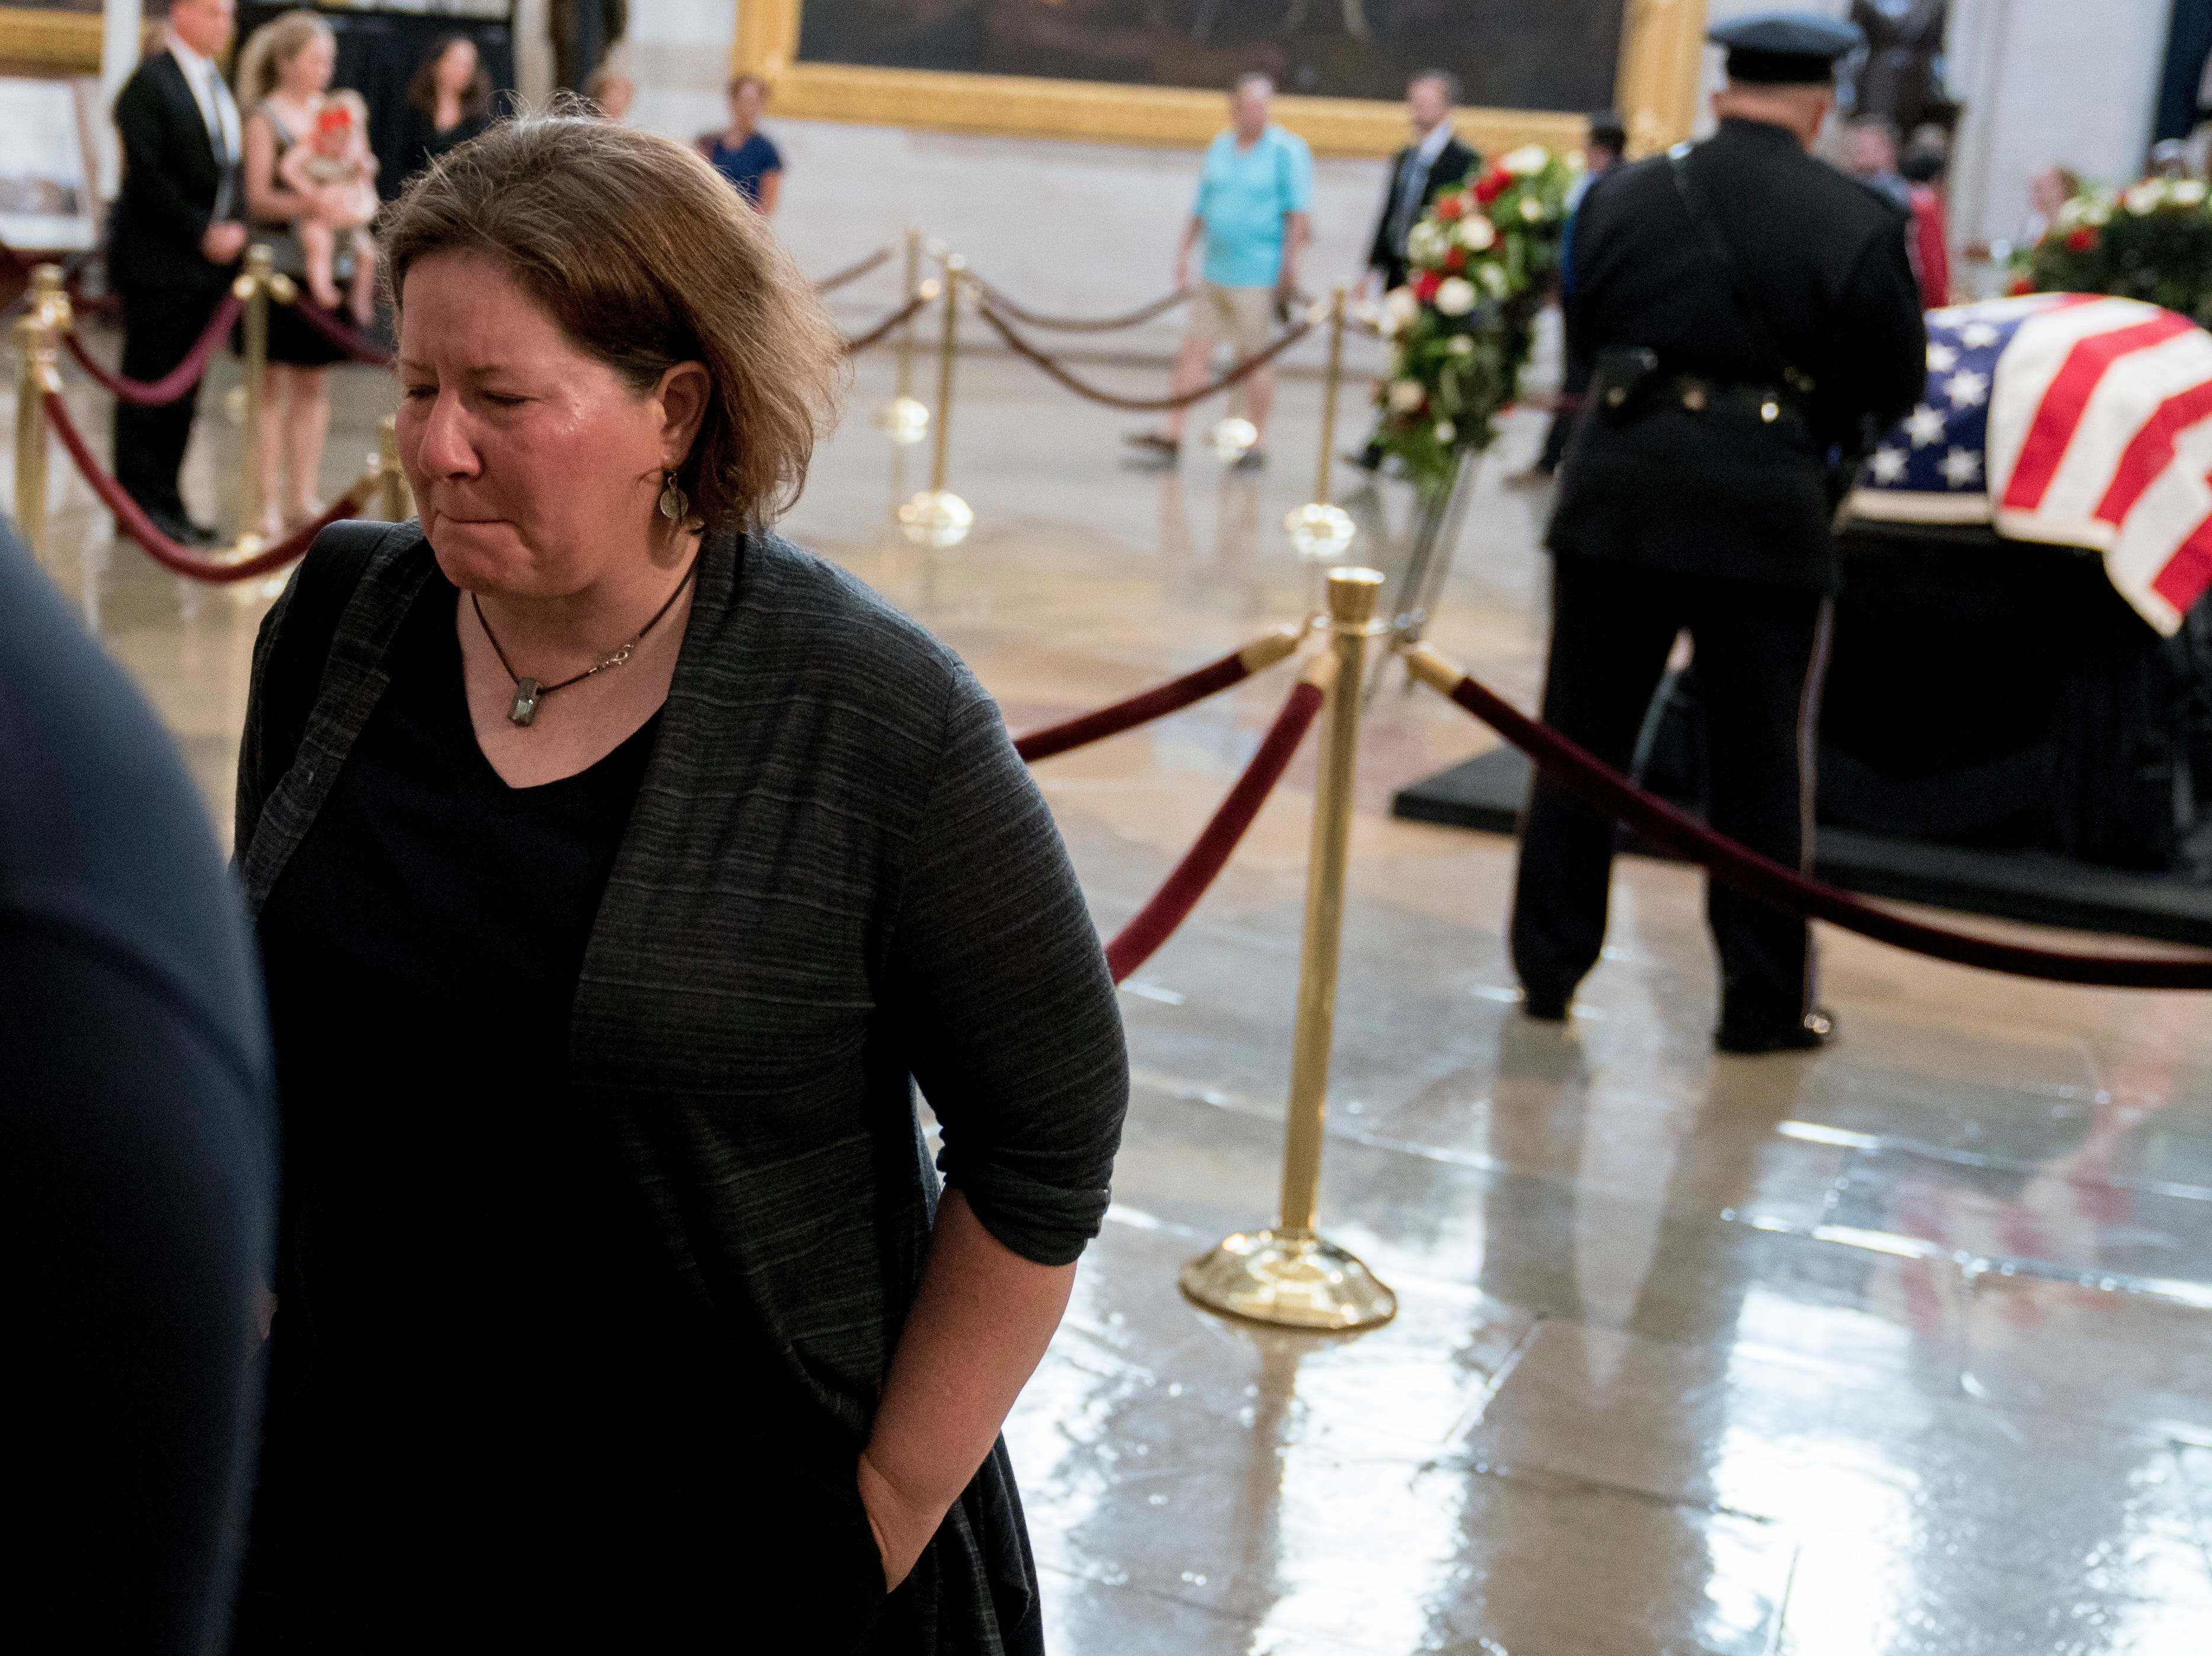 A visitor becomes emotional while paying respects to Sen. John McCain, R-Ariz., as McCain lies in state in the Rotunda of the U.S. Capitol, Friday, Aug. 31, 2018, in Washington. (AP Photo/Andrew Harnik)